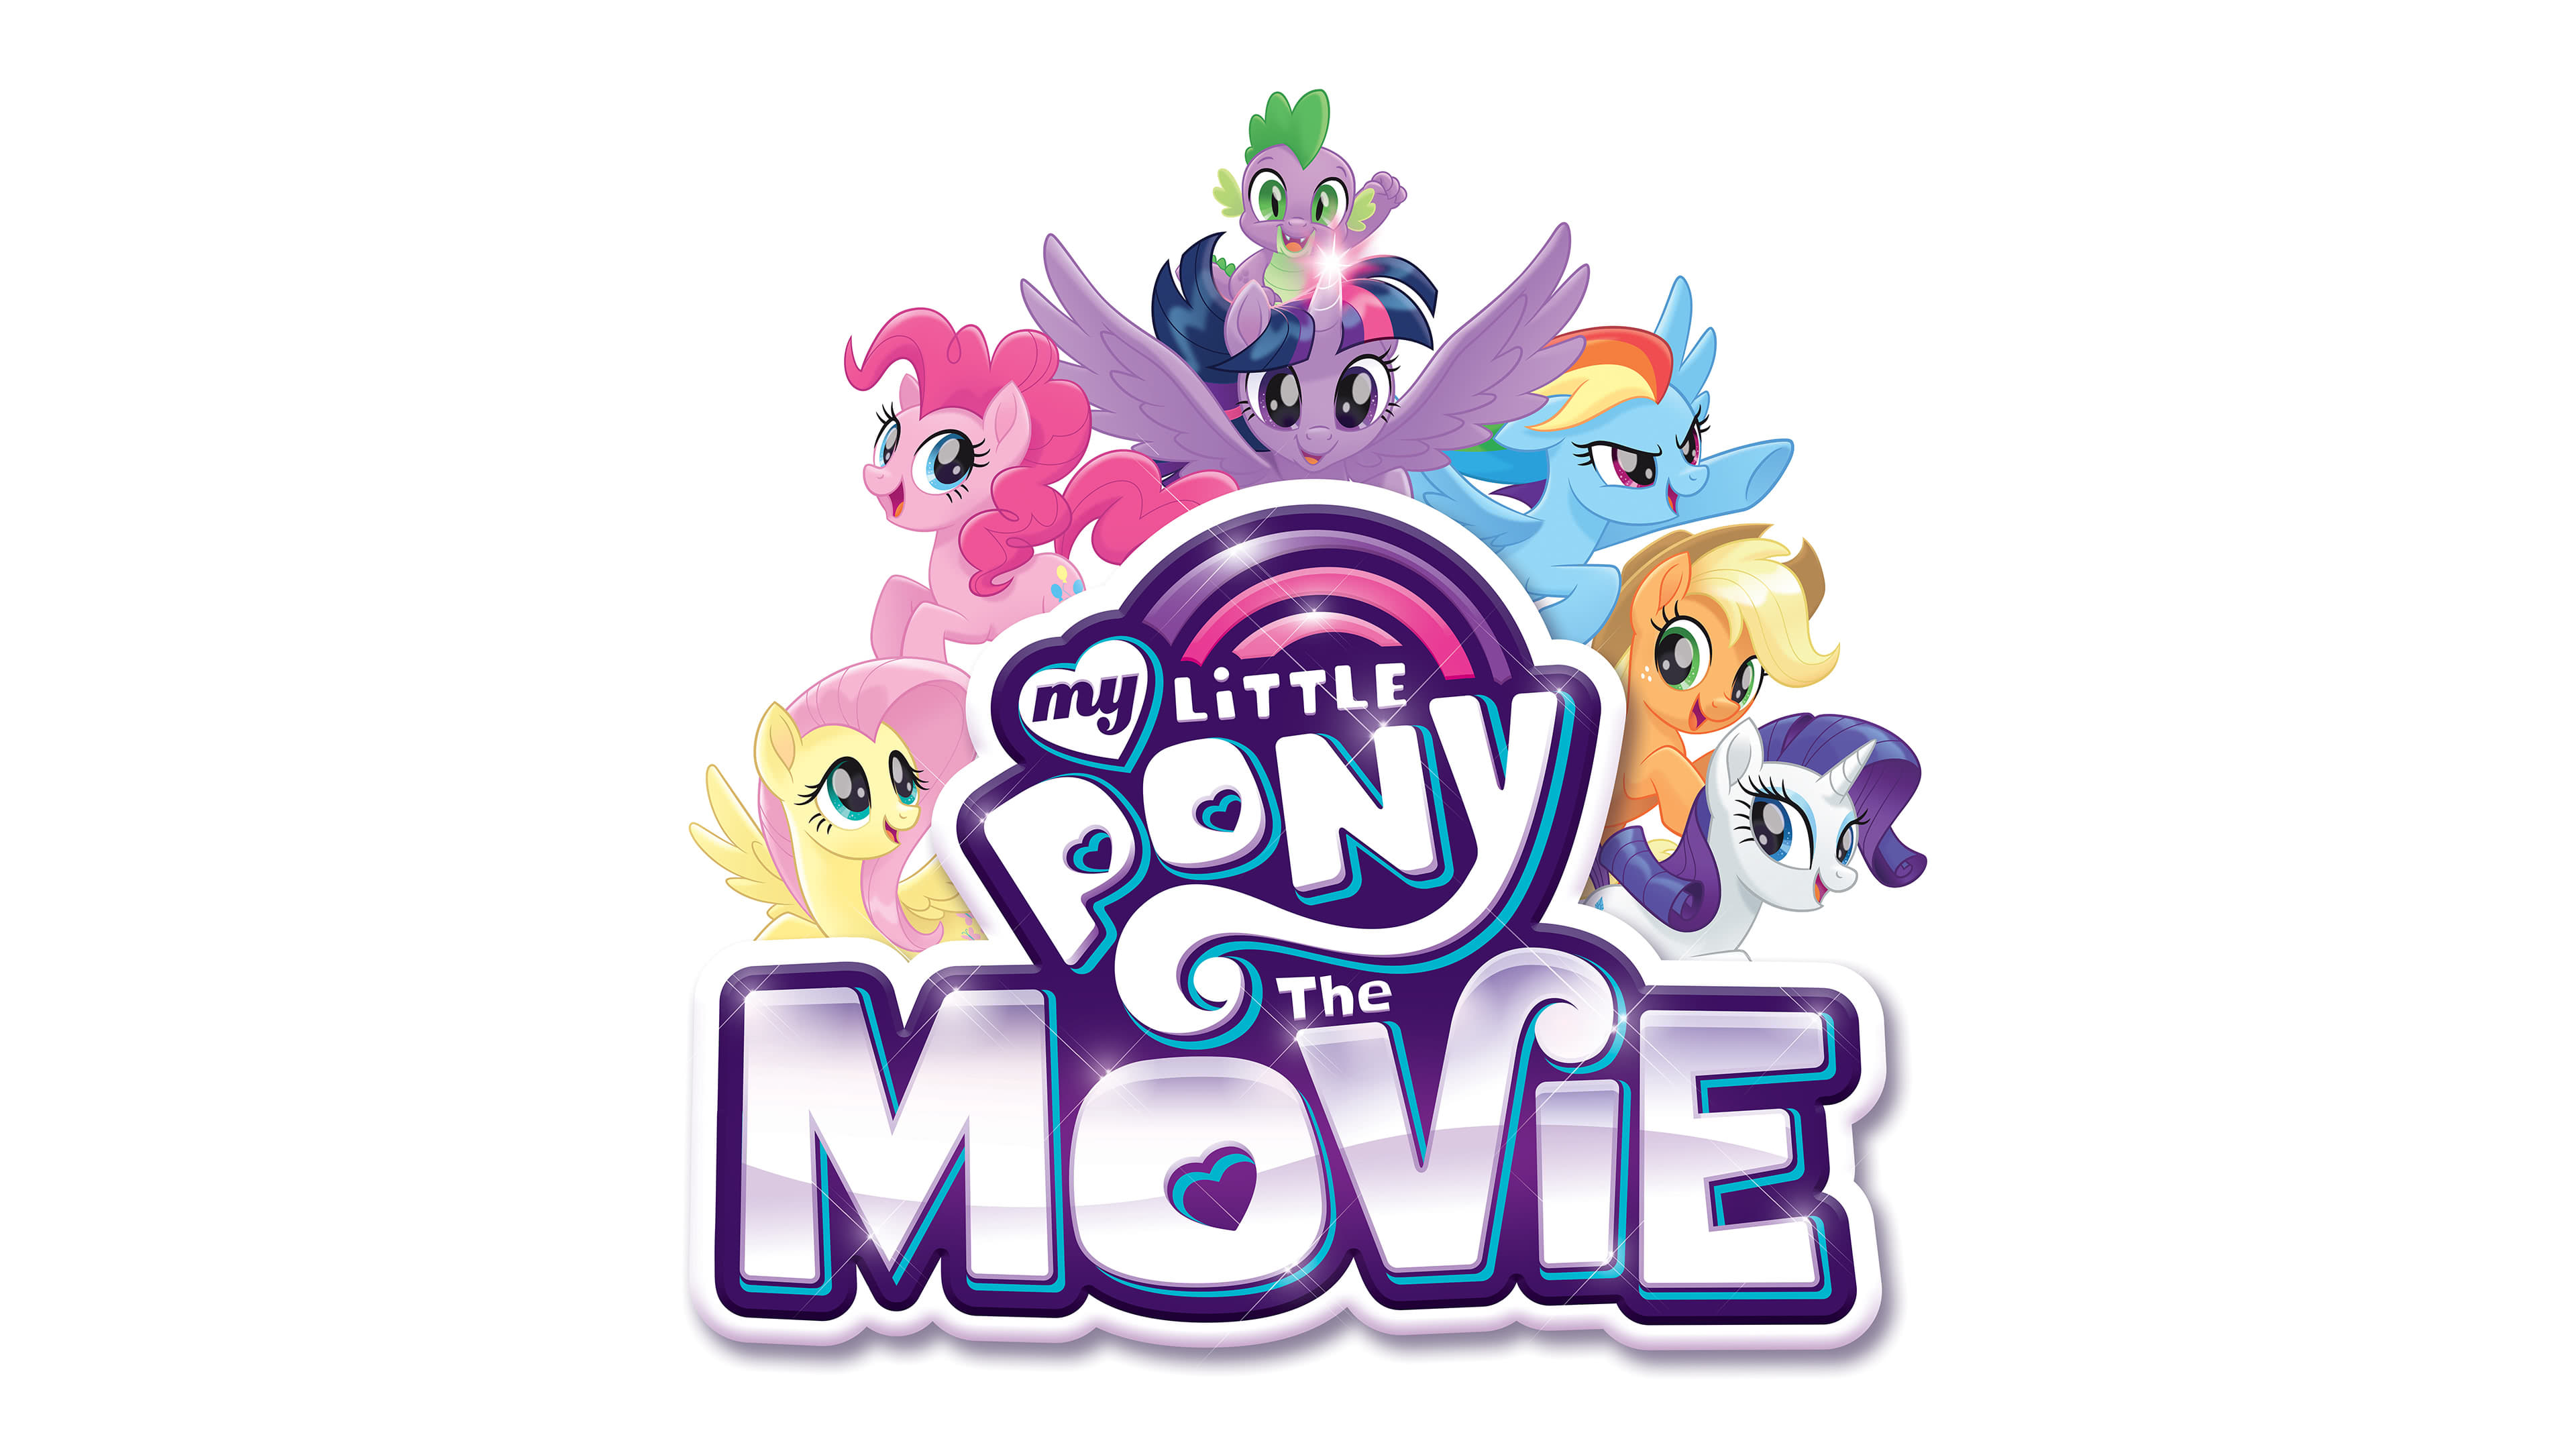 My Little Pony Movie Logo Uhd 4k Wallpaper Pixelz